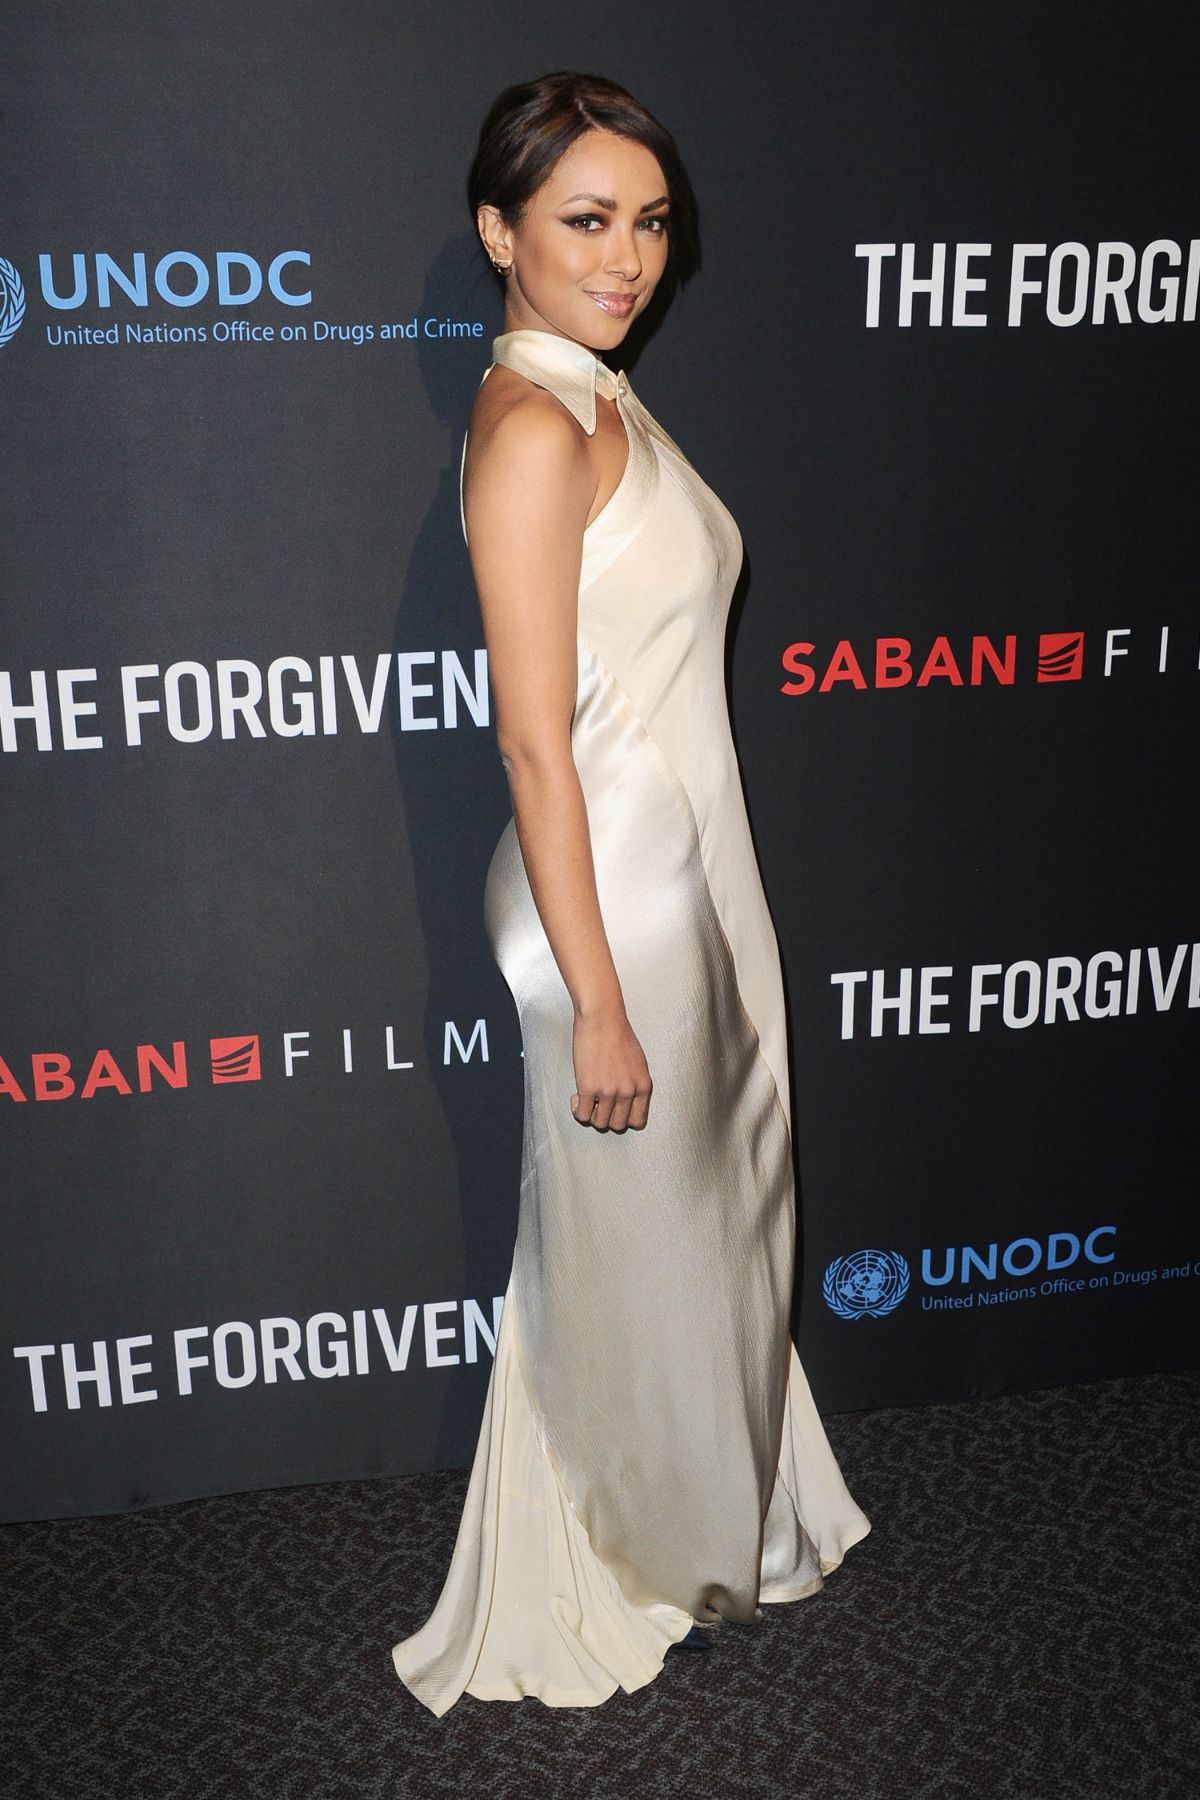 kat-graham-at-the-forgiven-premiere-in-los-angeles-03-07-2018-2